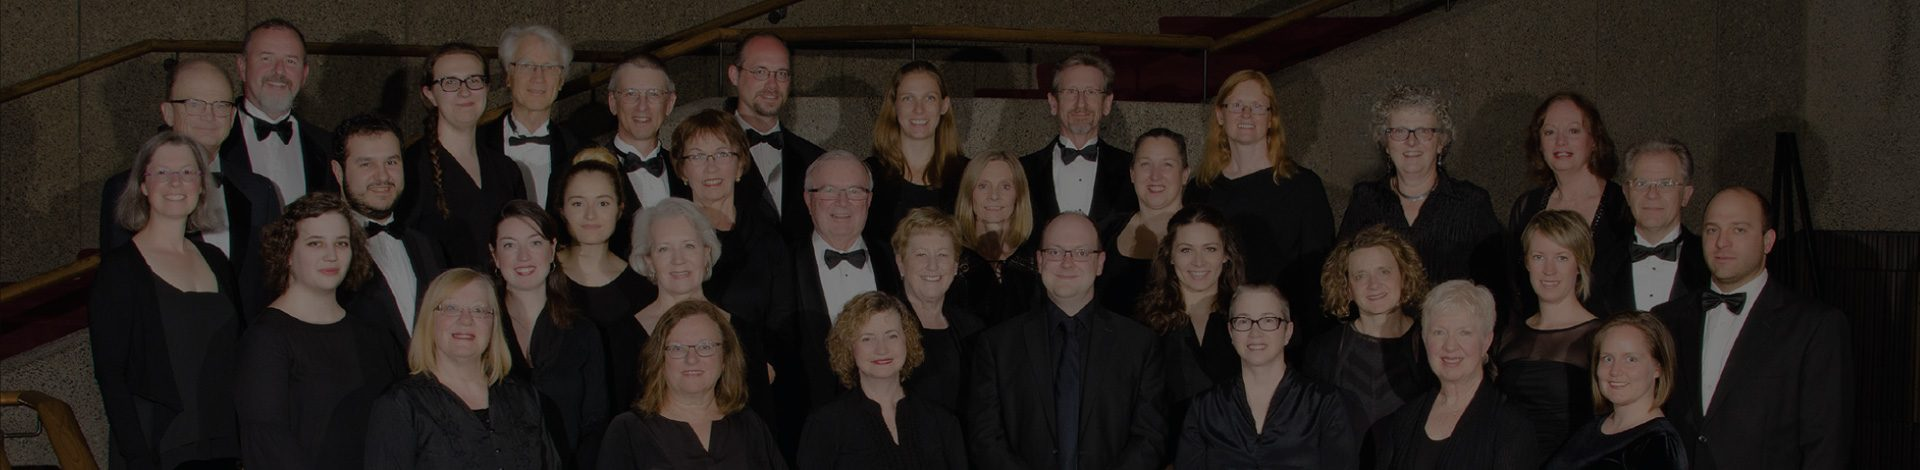 Cantata Singers of Ottawa choir